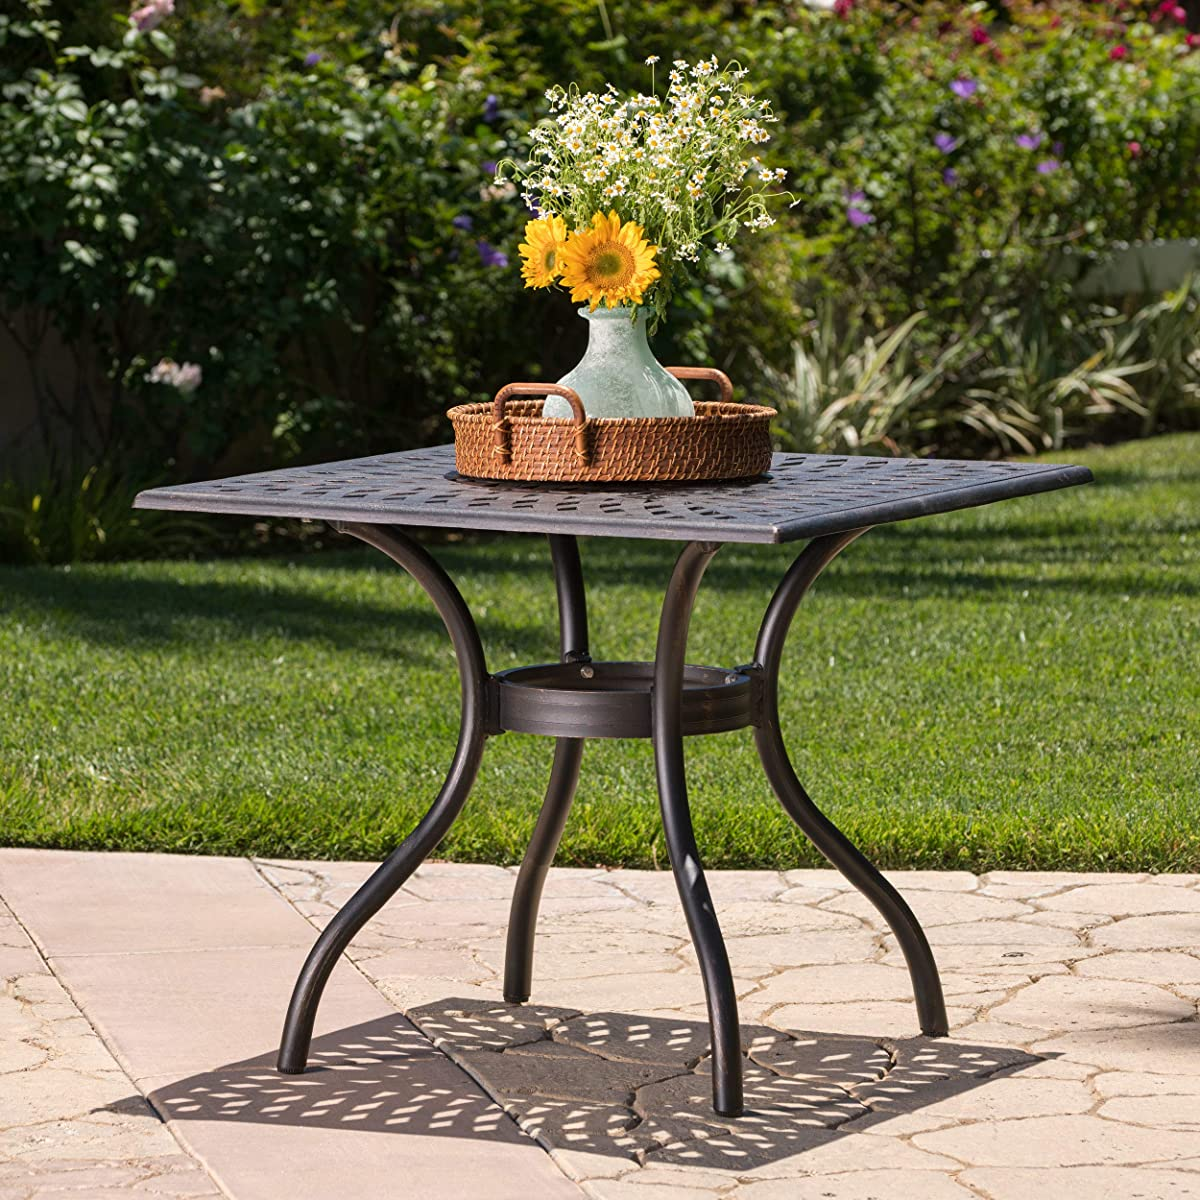 GDF Studio Augusta | Outdoor Cast Aluminum Dining Table | Square | Perfect for Patio | in Shiny Copper